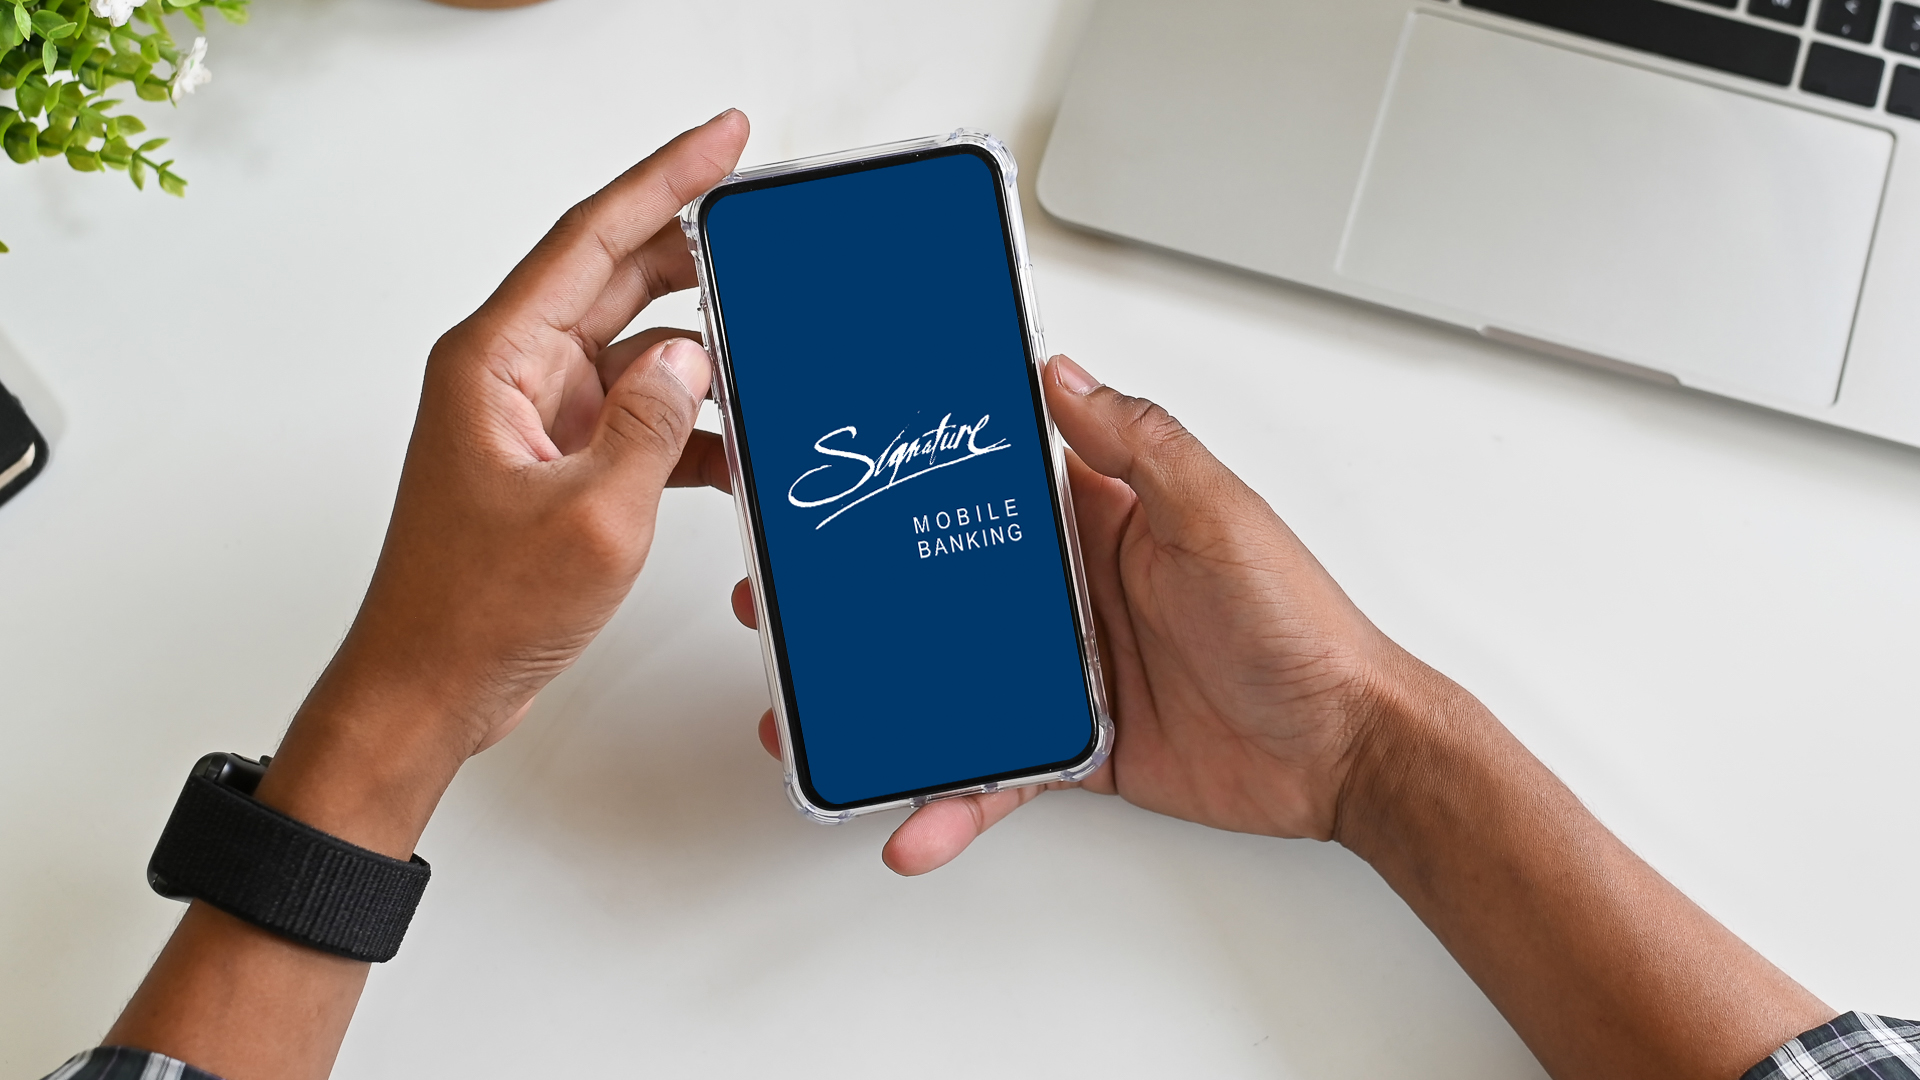 Signature Bank mobile banking app